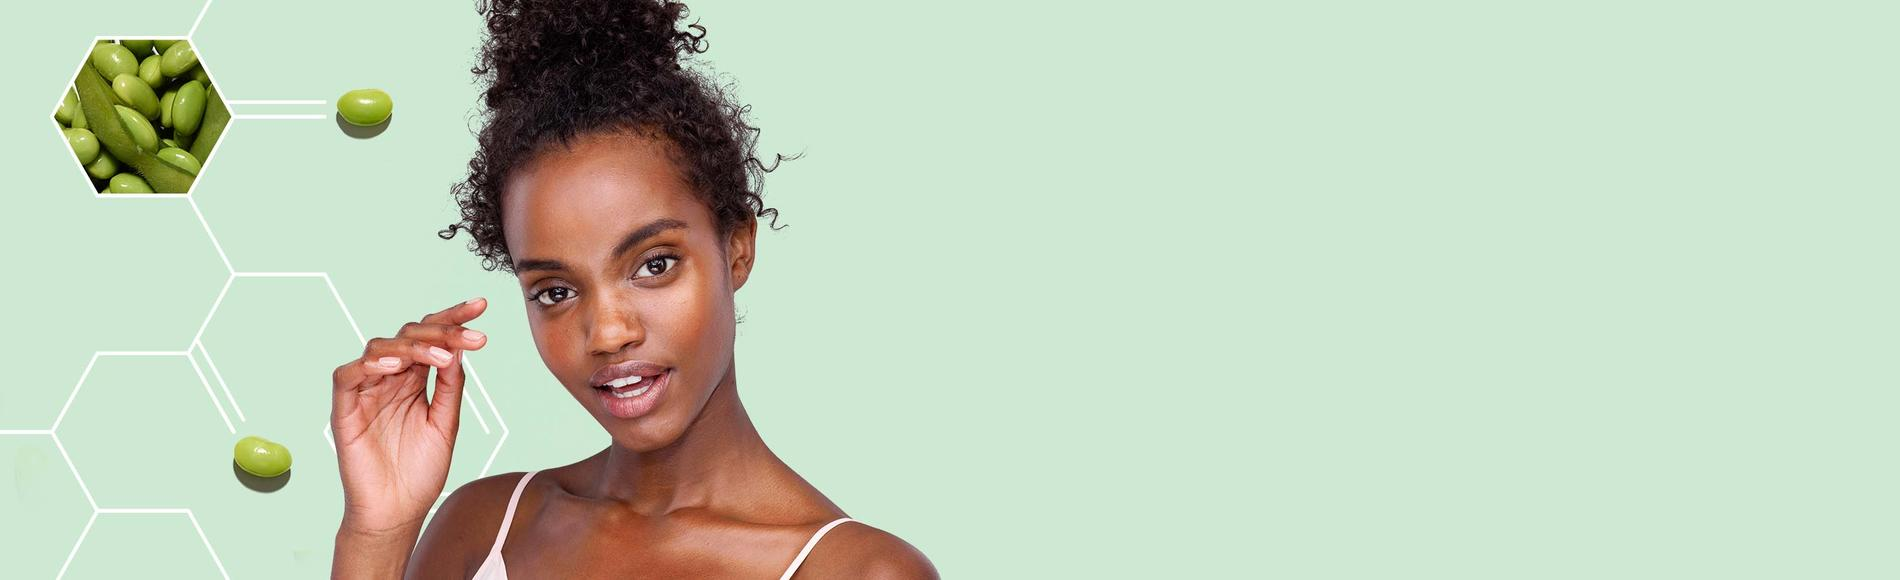 woman with vibrant skin using Aveeno clean complexion products